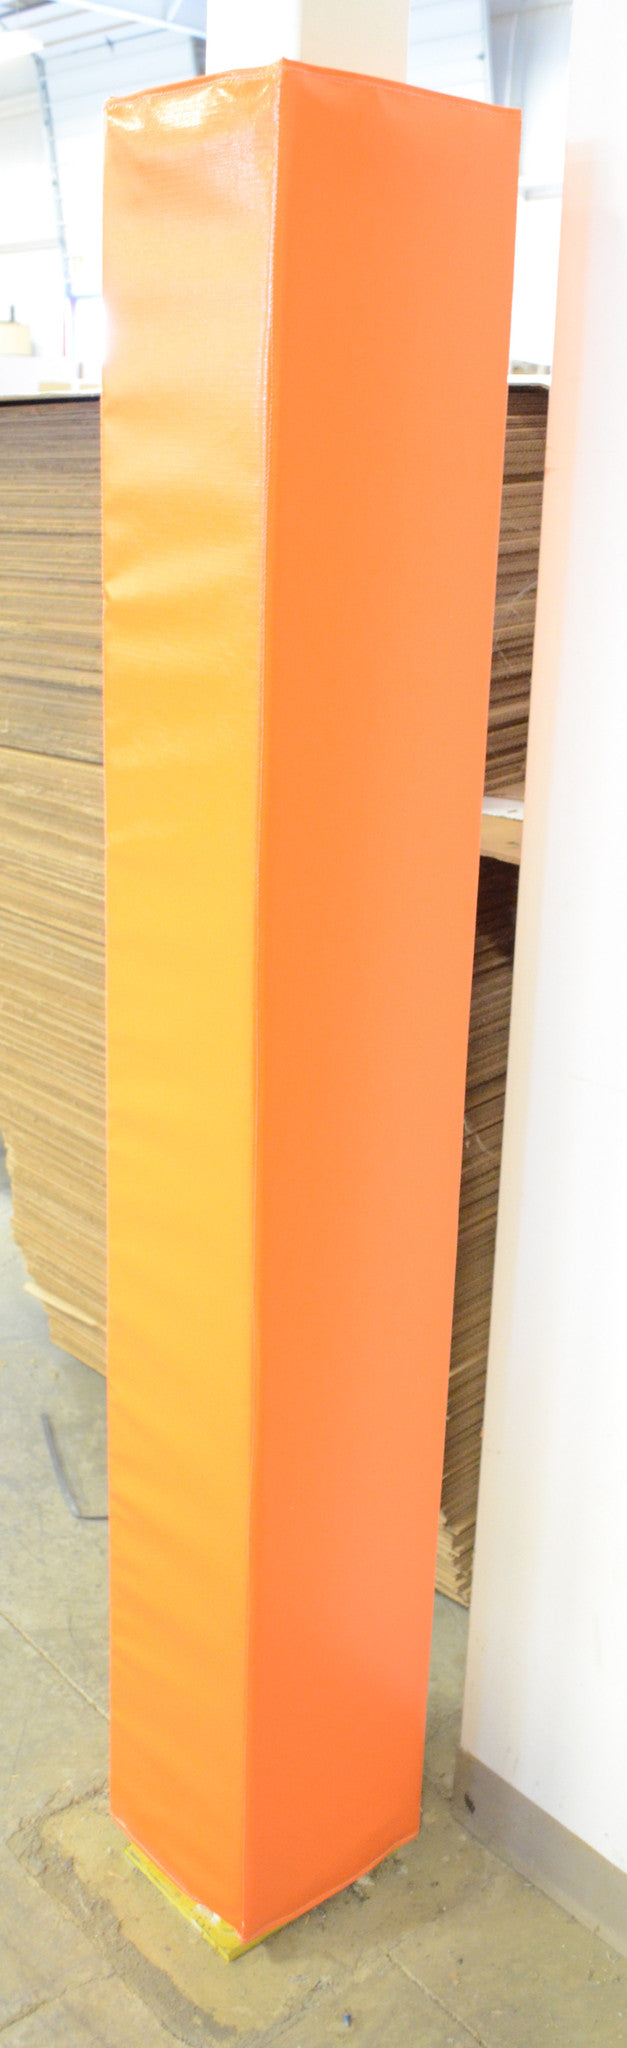 square pole pad orange